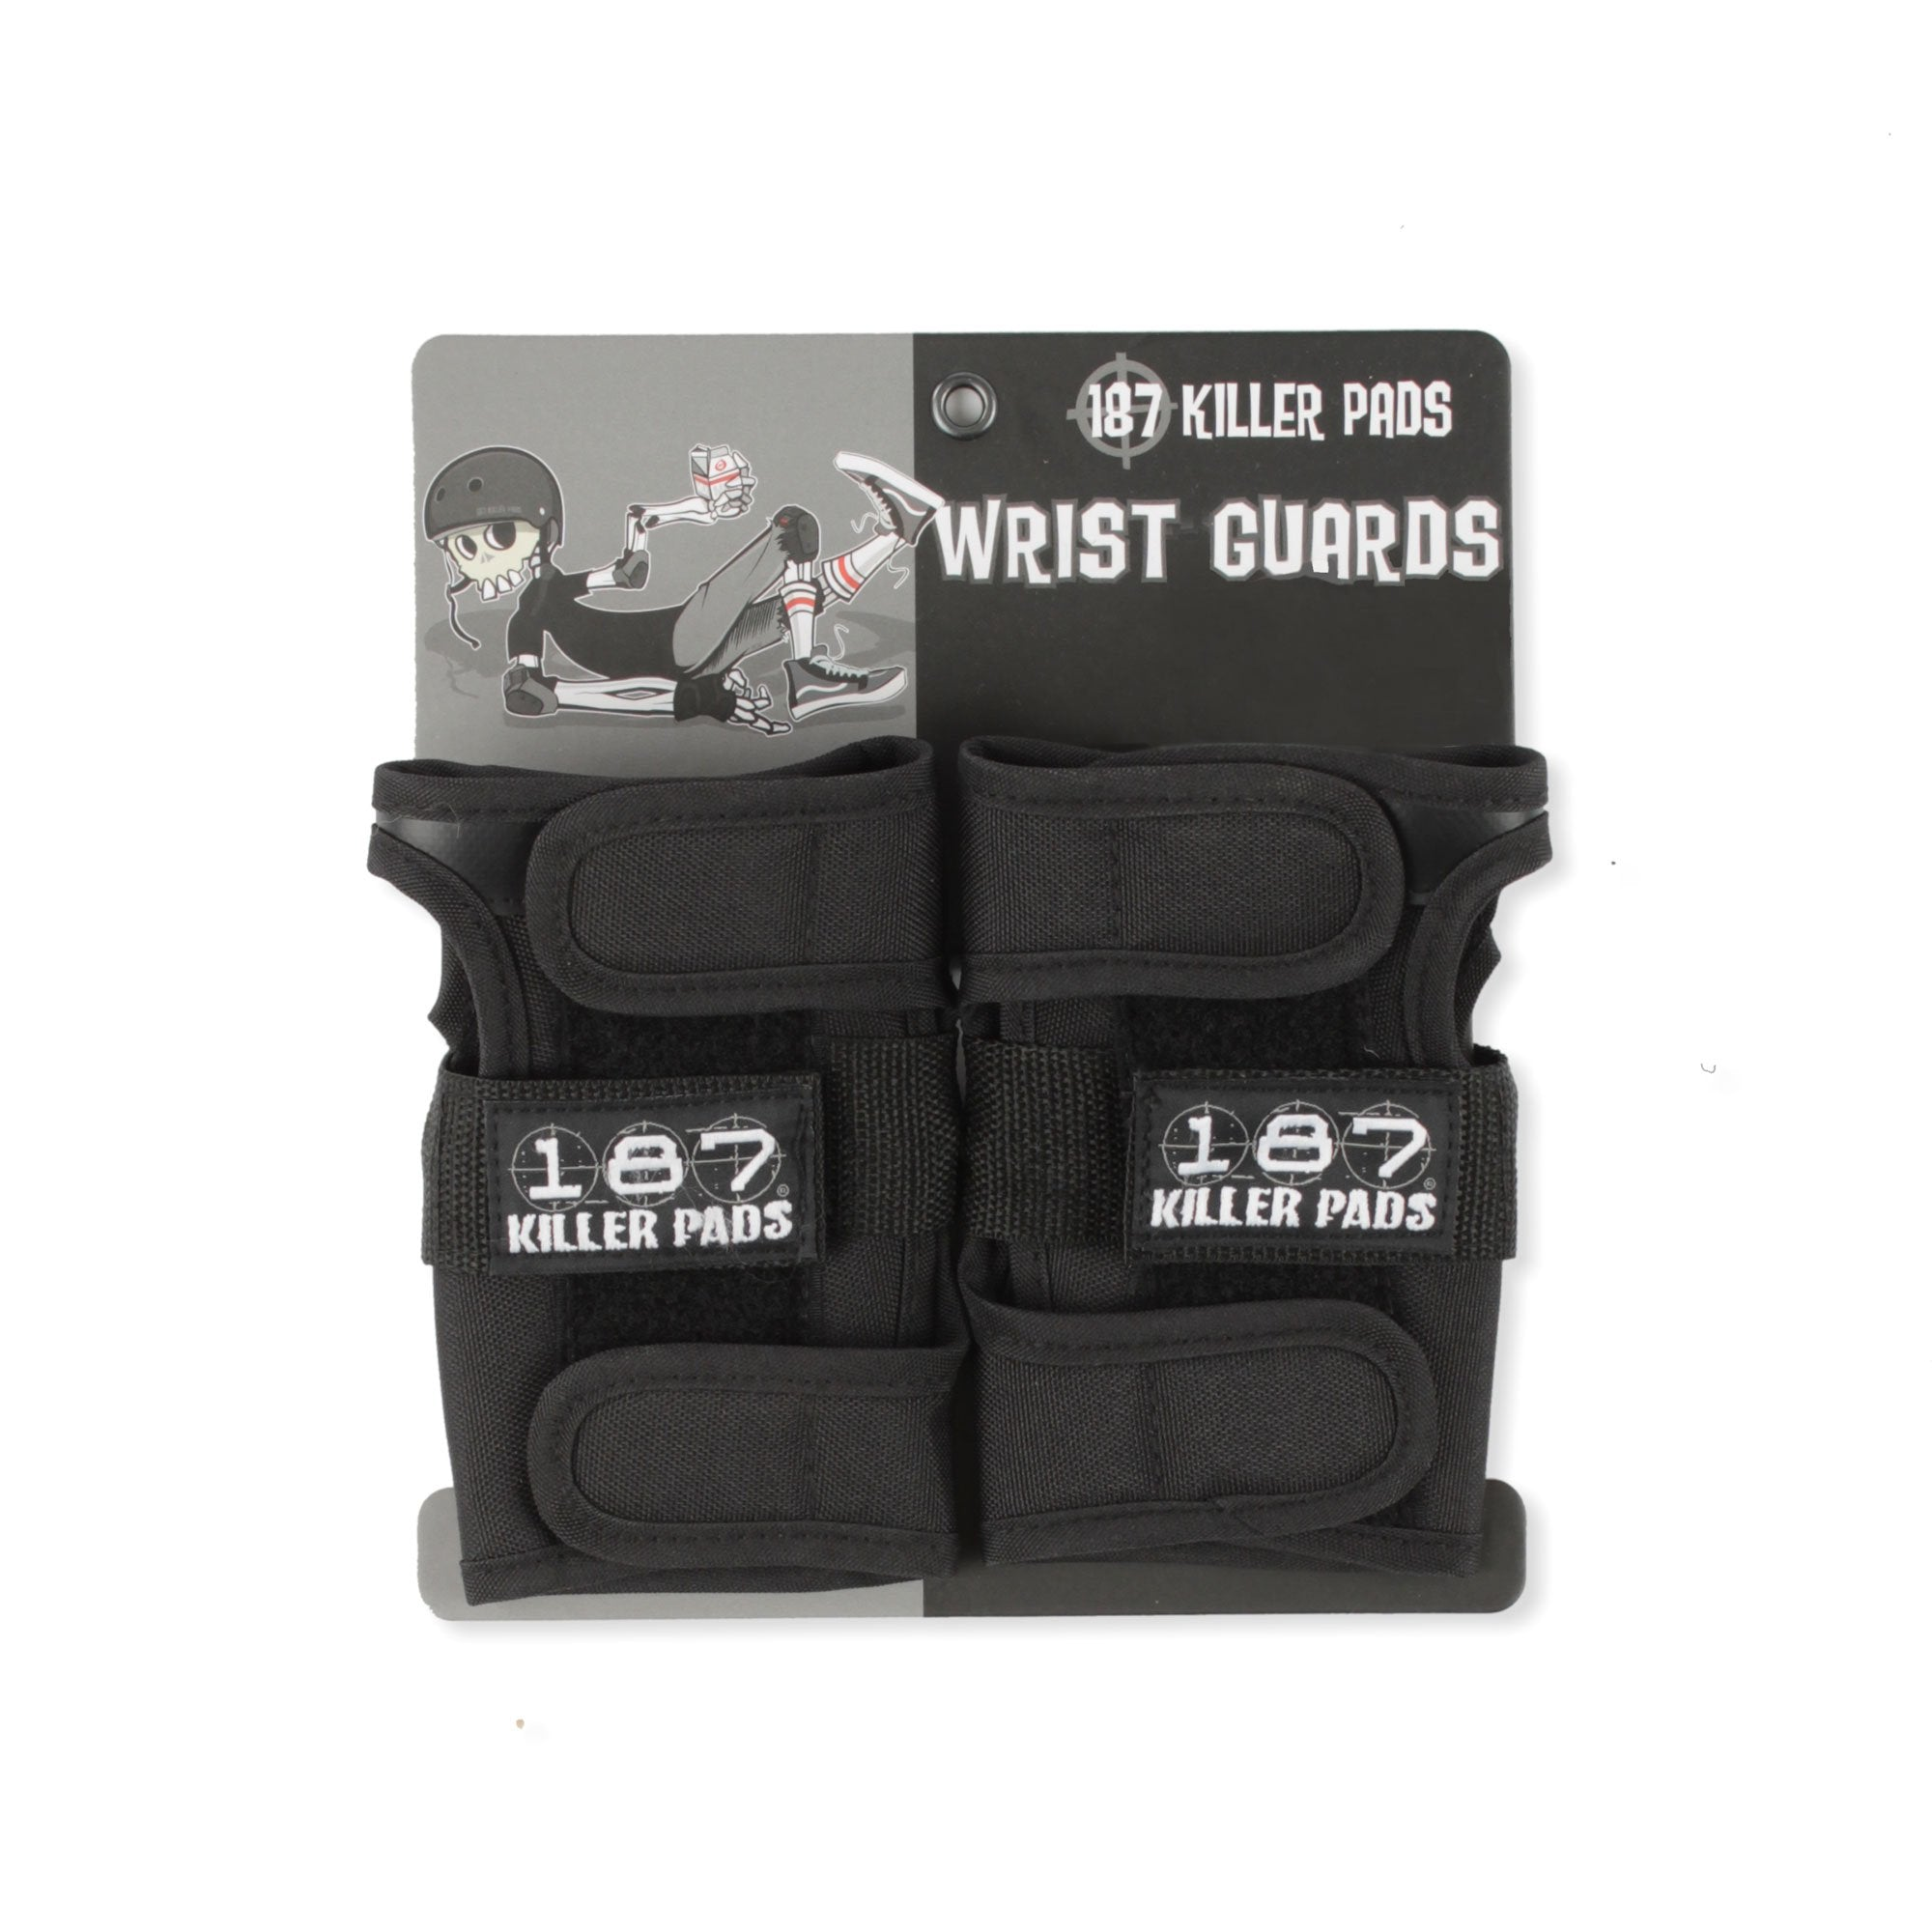 187 Killer Pads Wristguards Product Photo #1